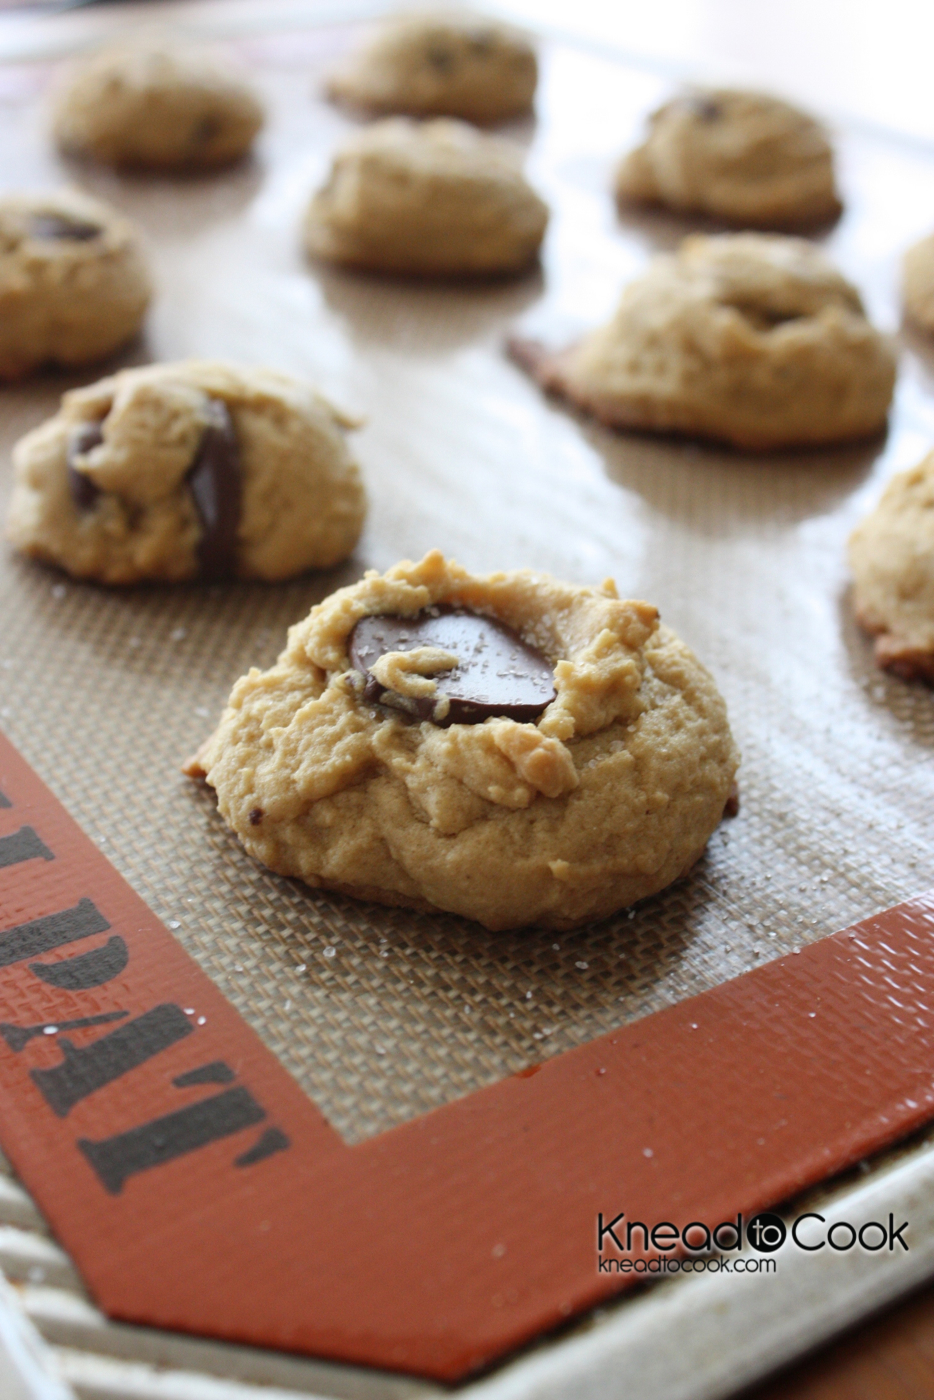 Sea Salt topped Peanut Butter Chocolate Chip Cookies ...